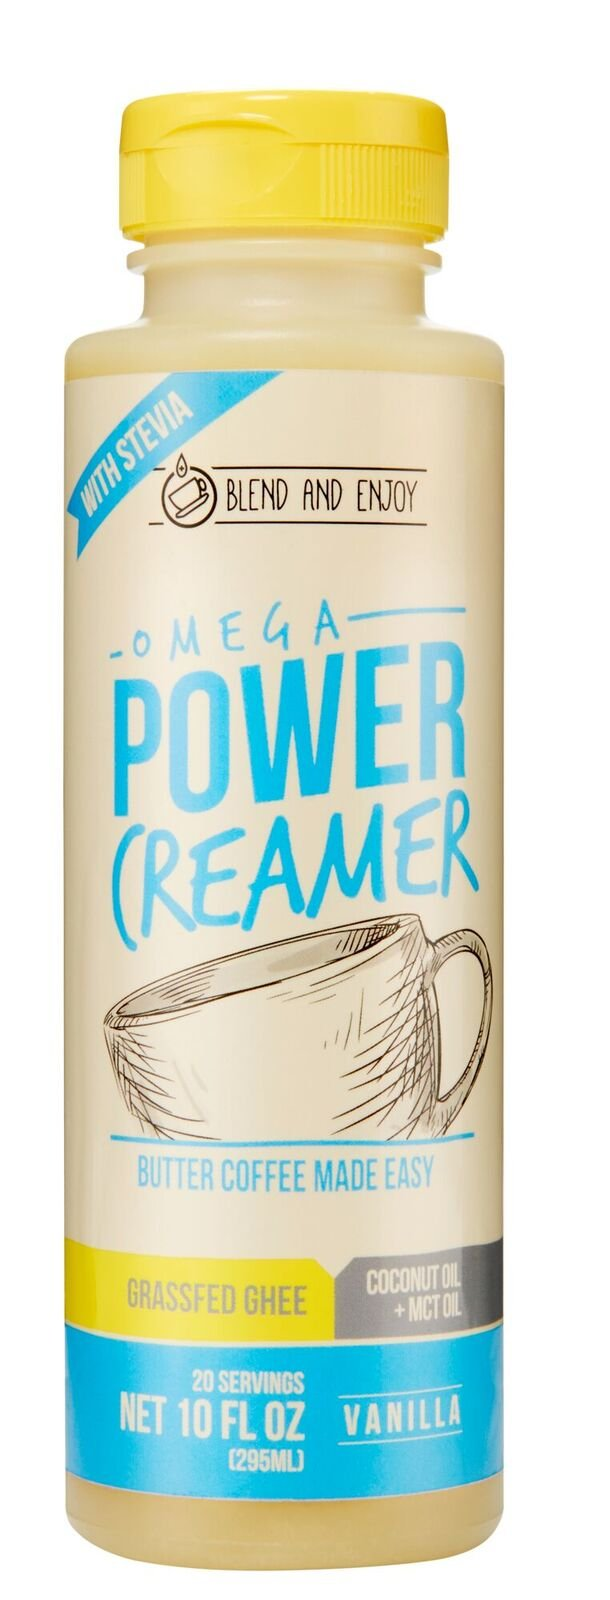 Omega PowerCreamer - VANILLA - Made with Grass-fed Organic Ghee, Organic Coconut Oil, MCT Oil from 100% C8/C10 | Premium Butter Coffee Blend | keto, paleo 10 fl oz (20 servings)